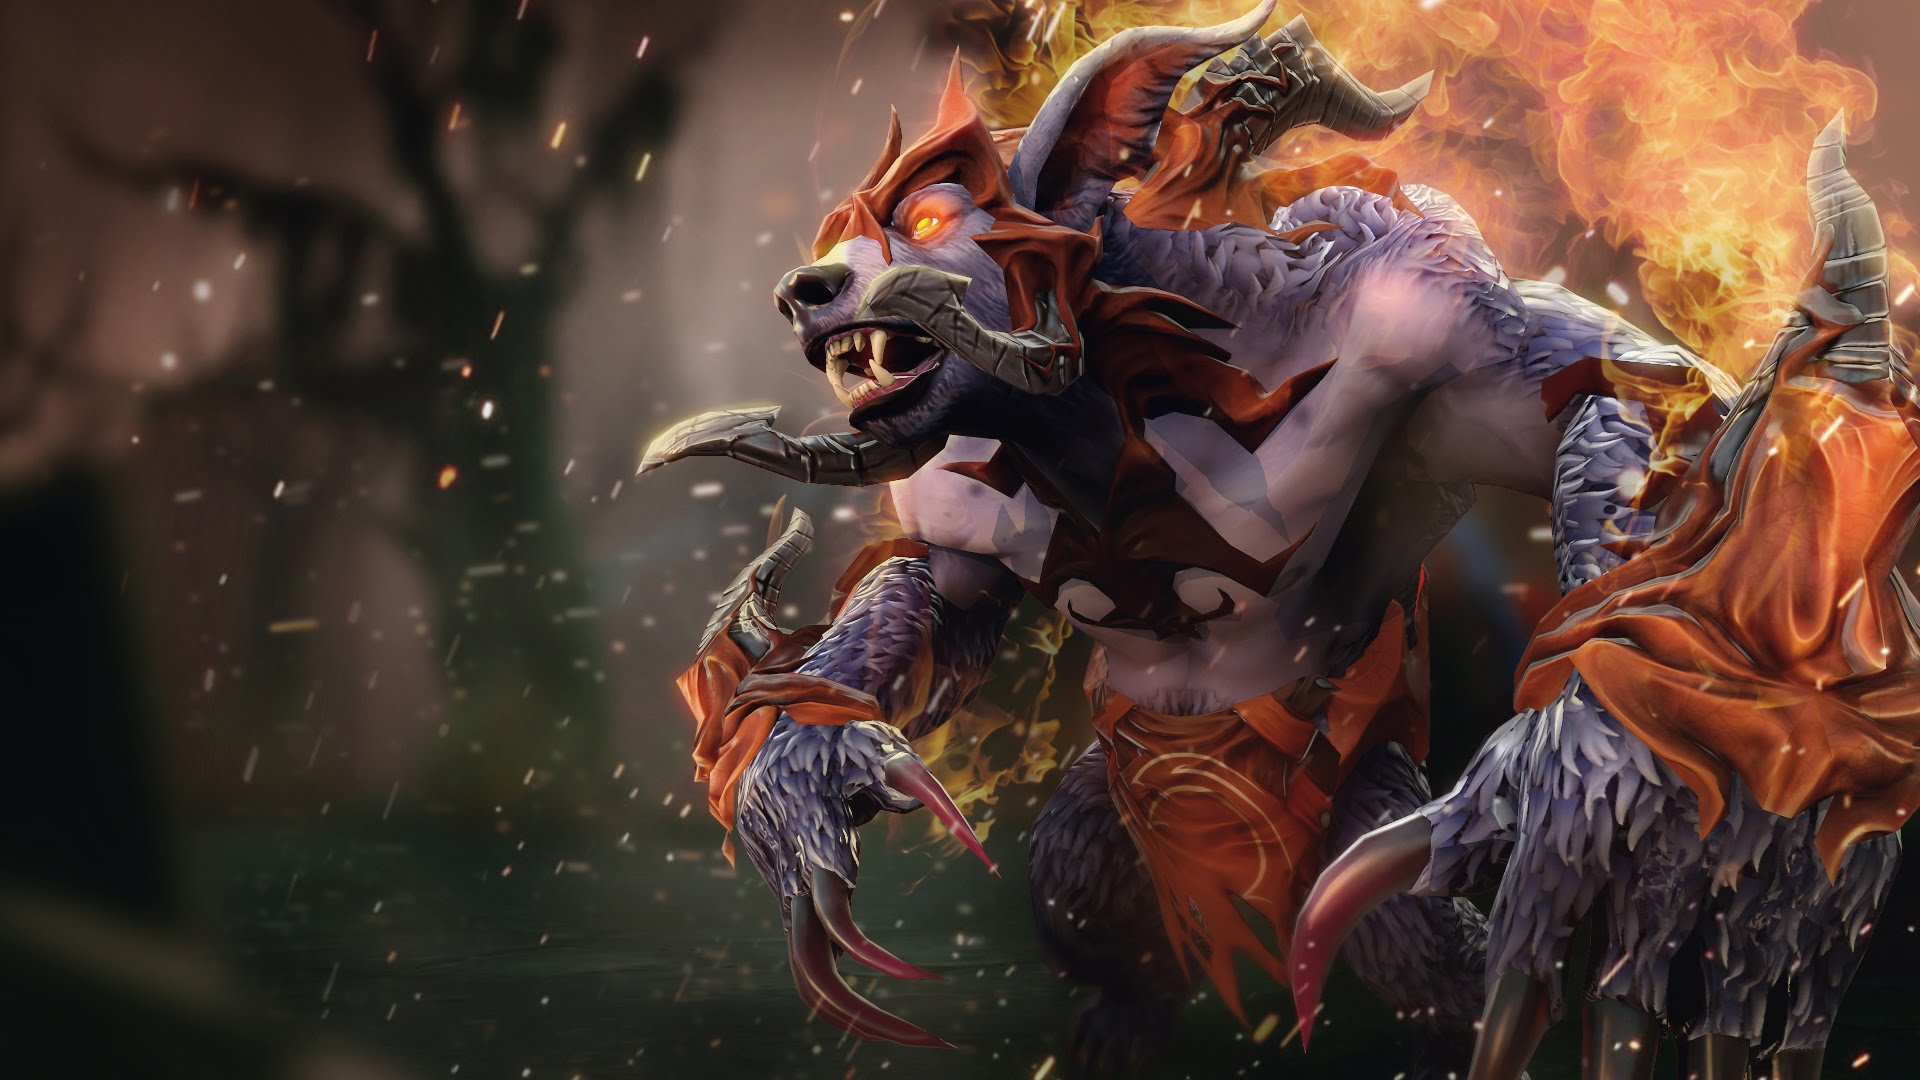 Dota2 : Ursa widescreen wallpapers